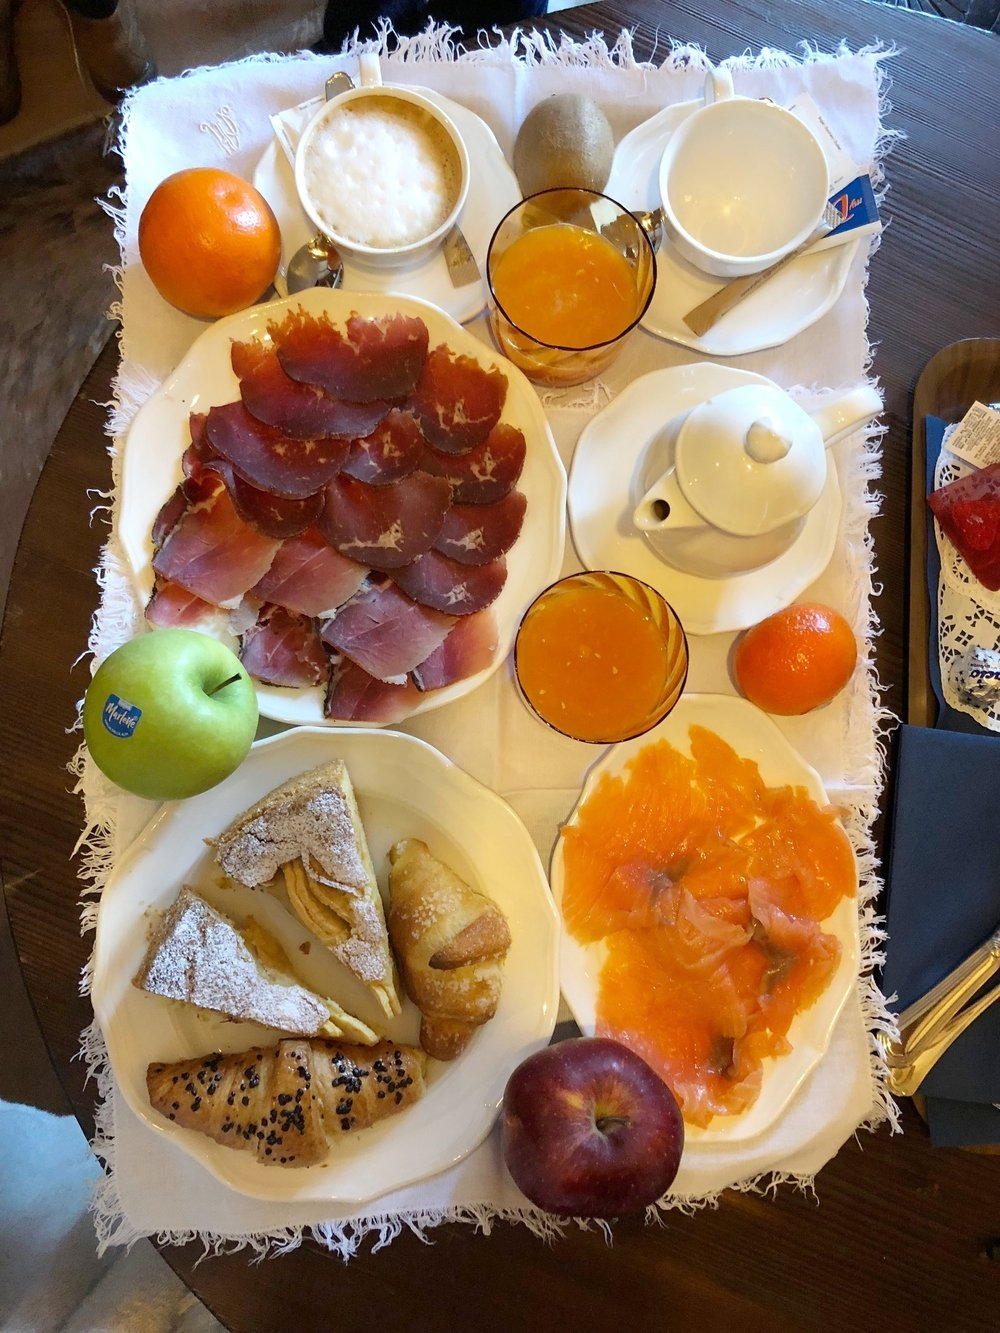 Hotel Ambra Cortina - room service breakfast.jpg